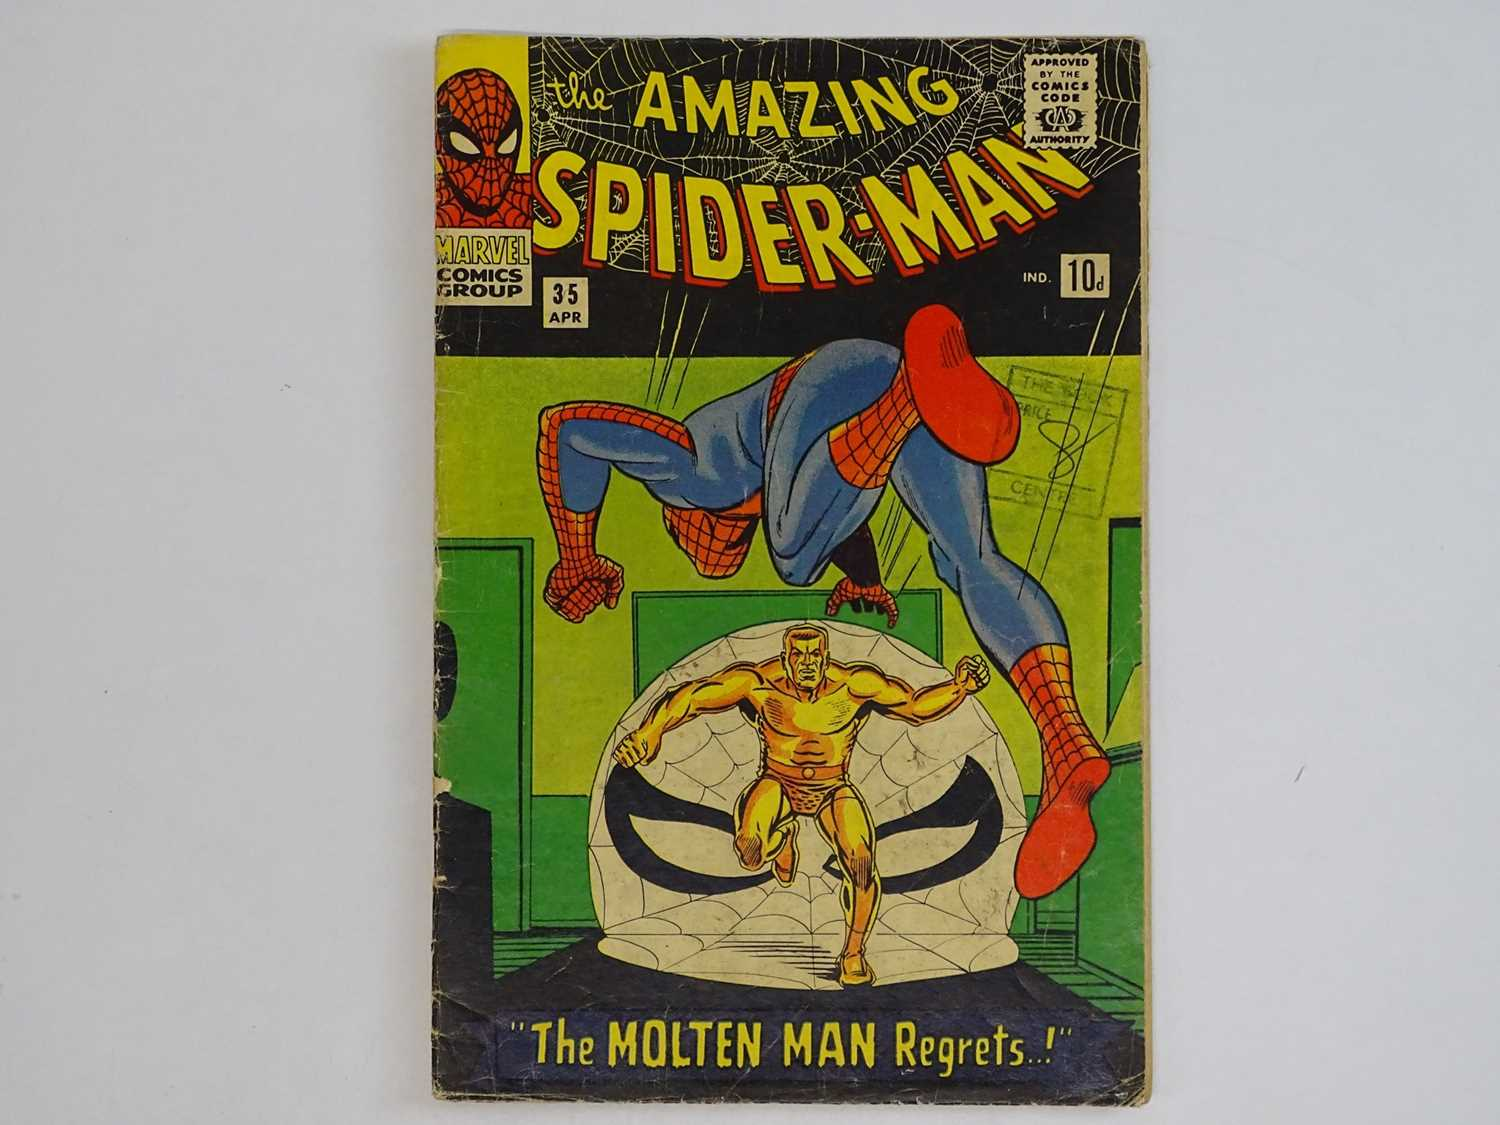 AMAZING SPIDER-MAN #35 - (1966 - MARVEL - UK Price Variant) - Second appearance of the Molten Man.